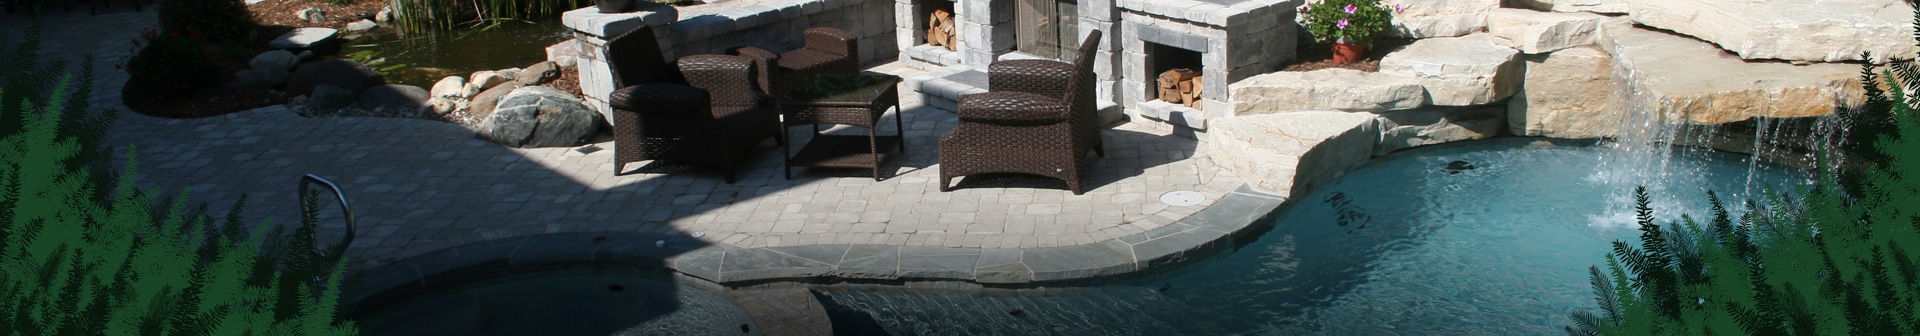 Outdoor living space designed for you in Delafield, WI